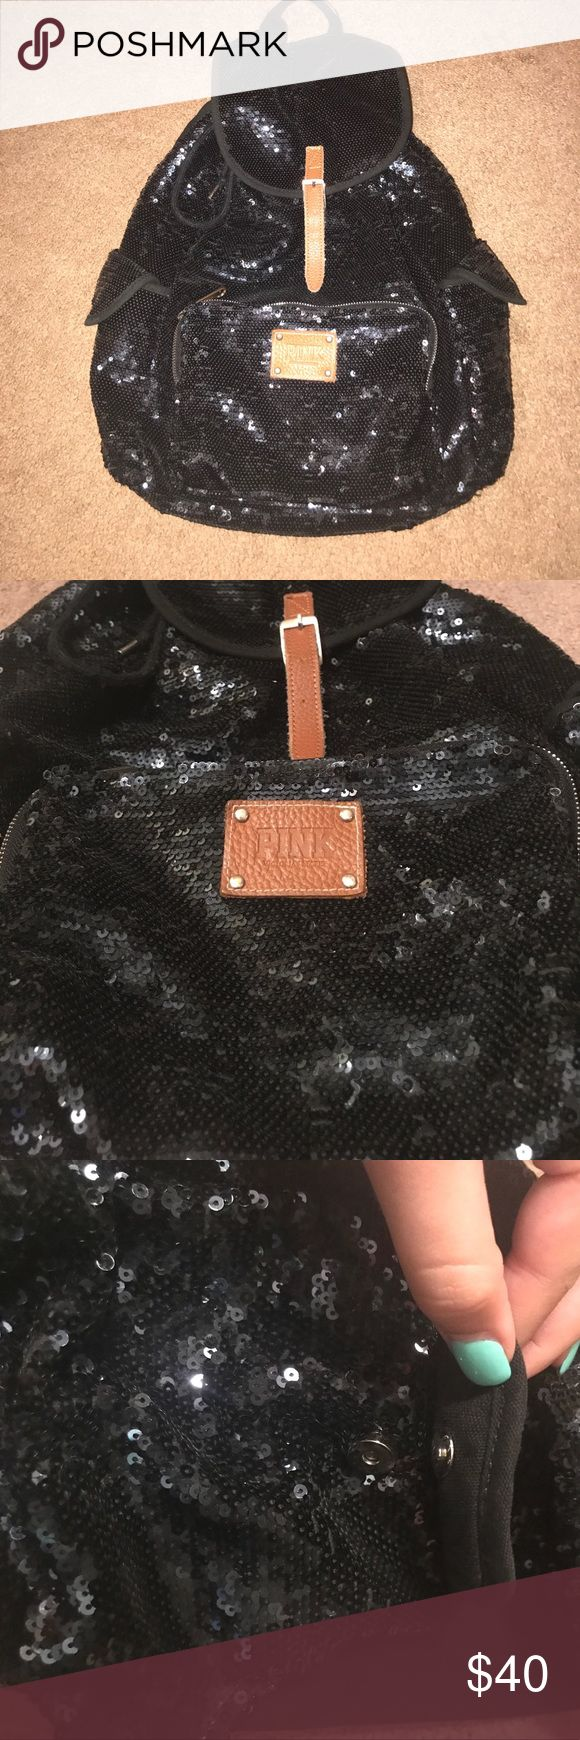 Victoria's Secret Pink black sequined backpack EUC black sequined with leather colored accessory backpack from vs pink. Has snap close side pockets and from zip pouch. Backpack lid closes with a true belt latch. Only minor wear on Handle and bottom of bag shown in excellent condition PINK Victoria's Secret Bags Backpacks